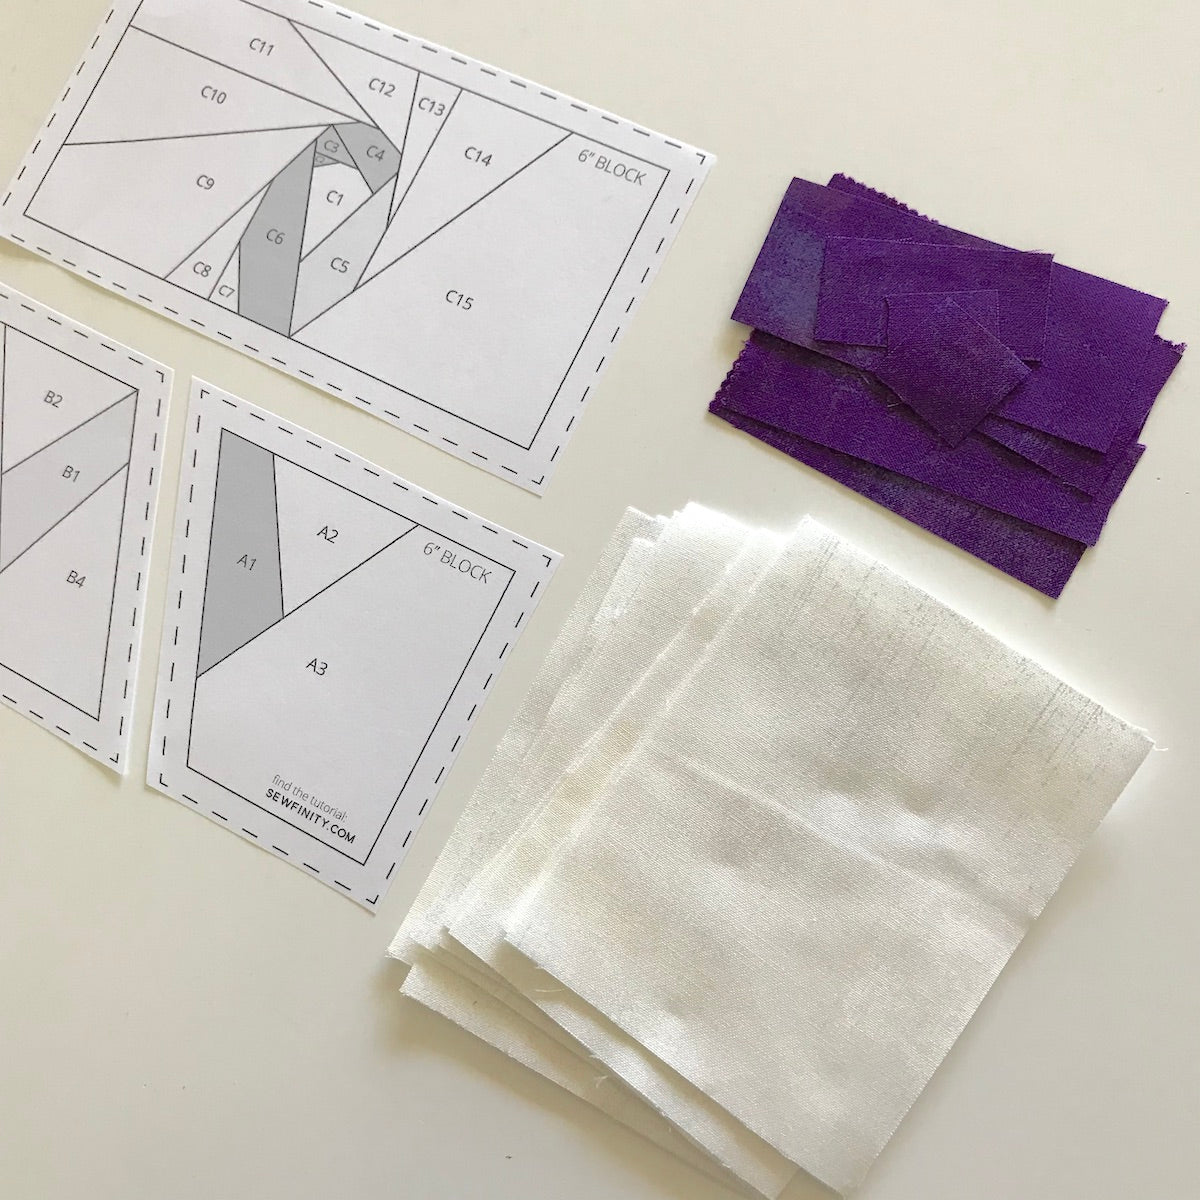 Foundation Paper Piecing Pattern and fabric